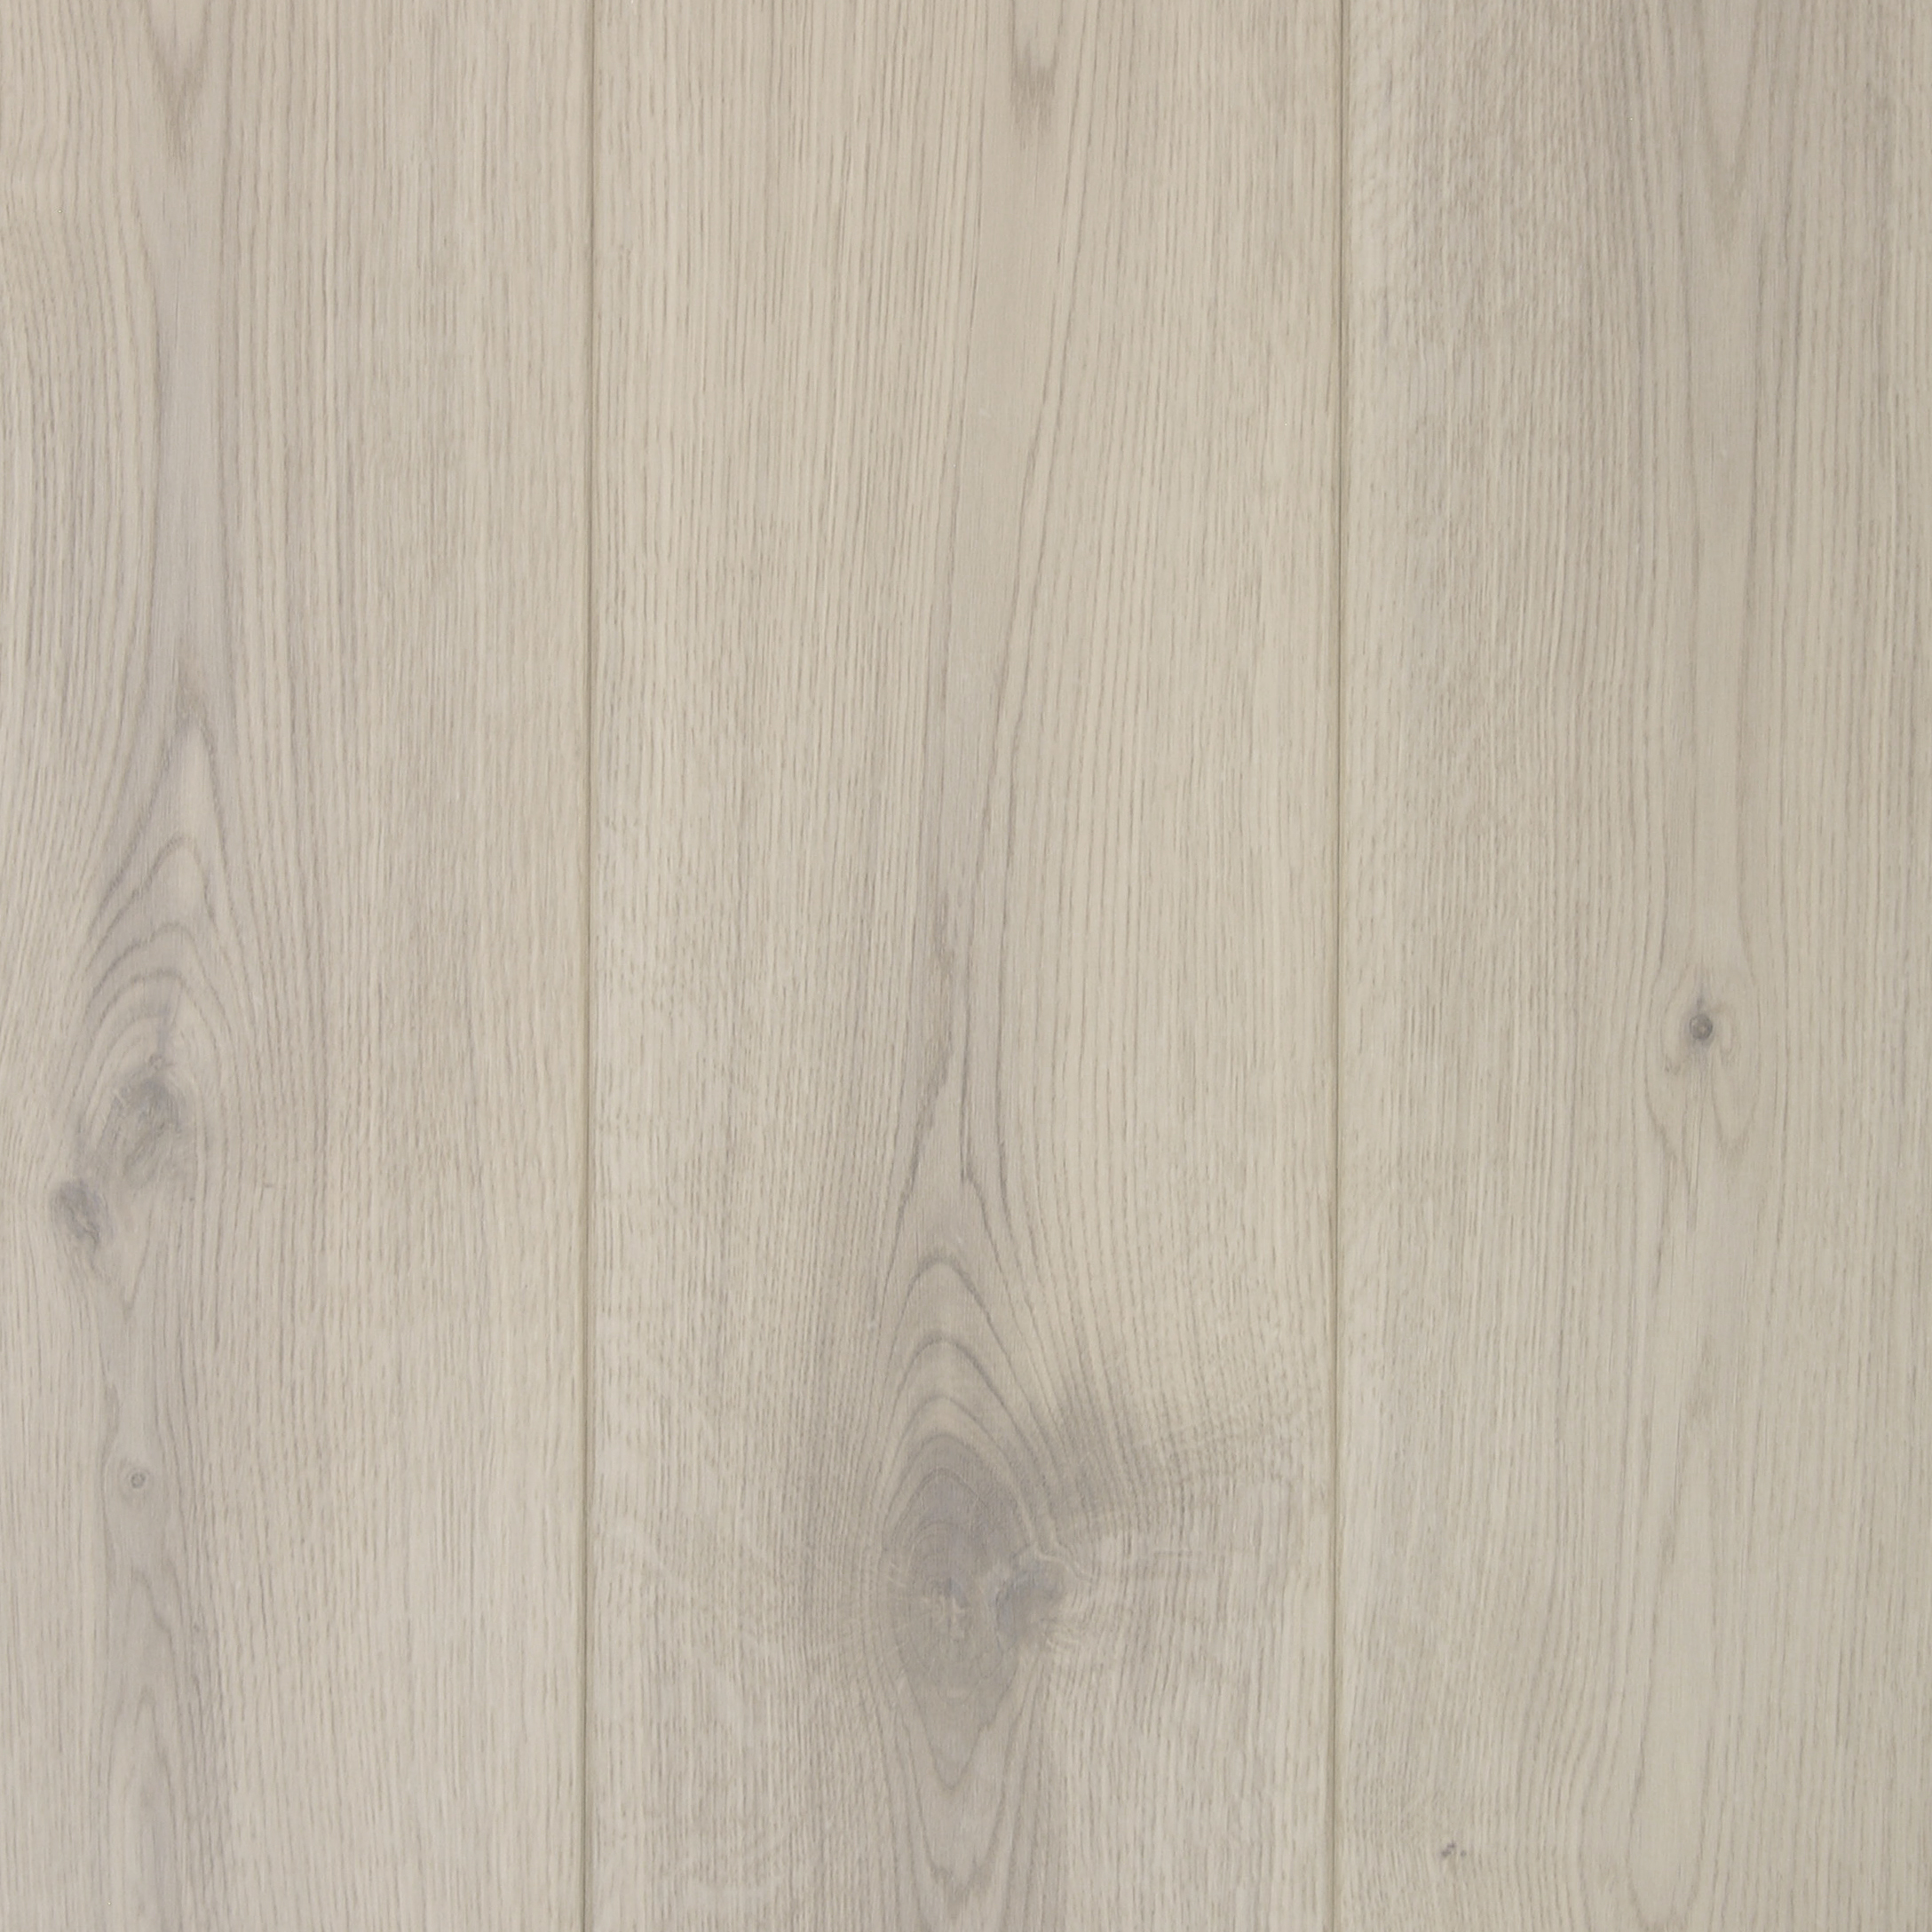 Rochester contract oak flooring character grade 180mm for Contract flooring